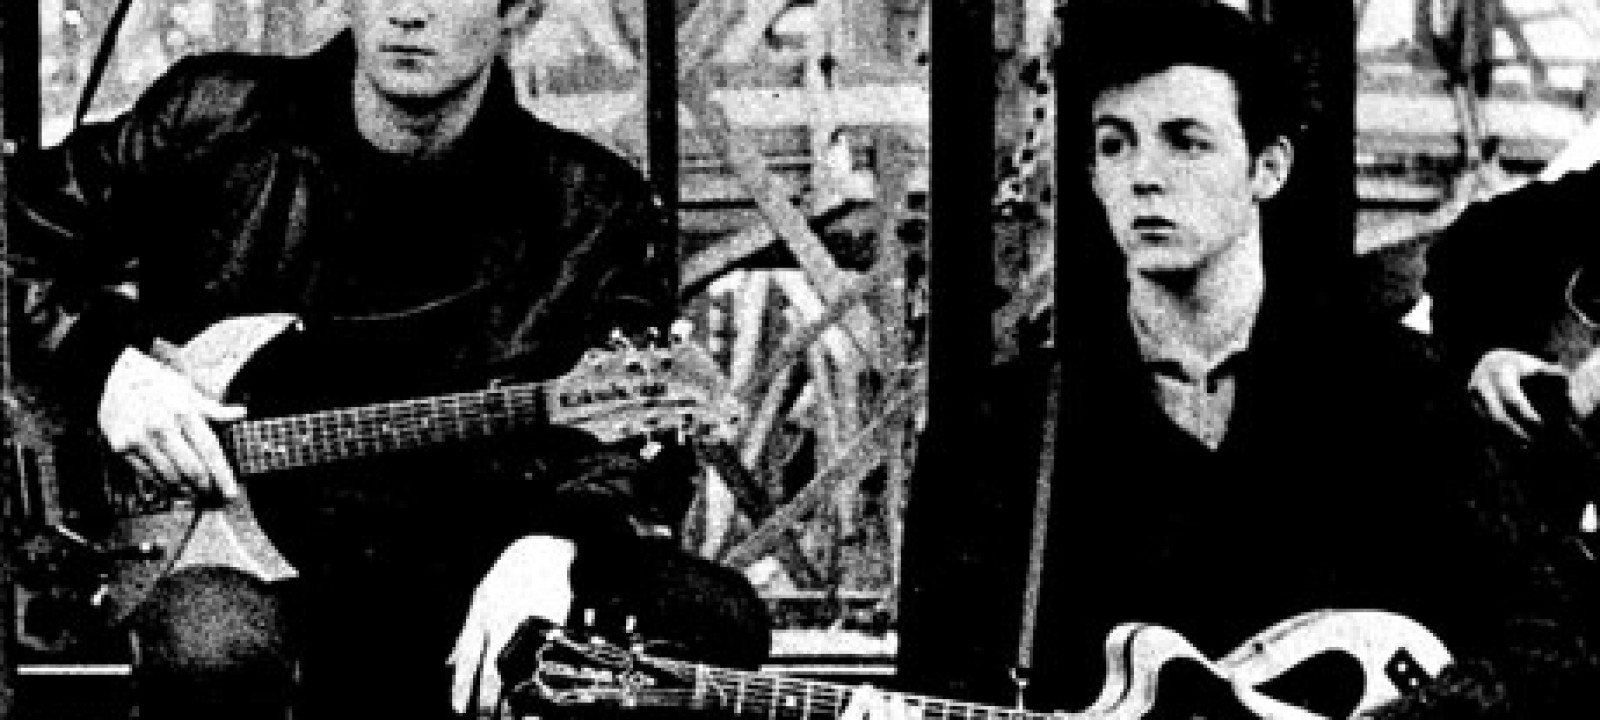 John Lennon and Paul McCartney in Hamburg 1961